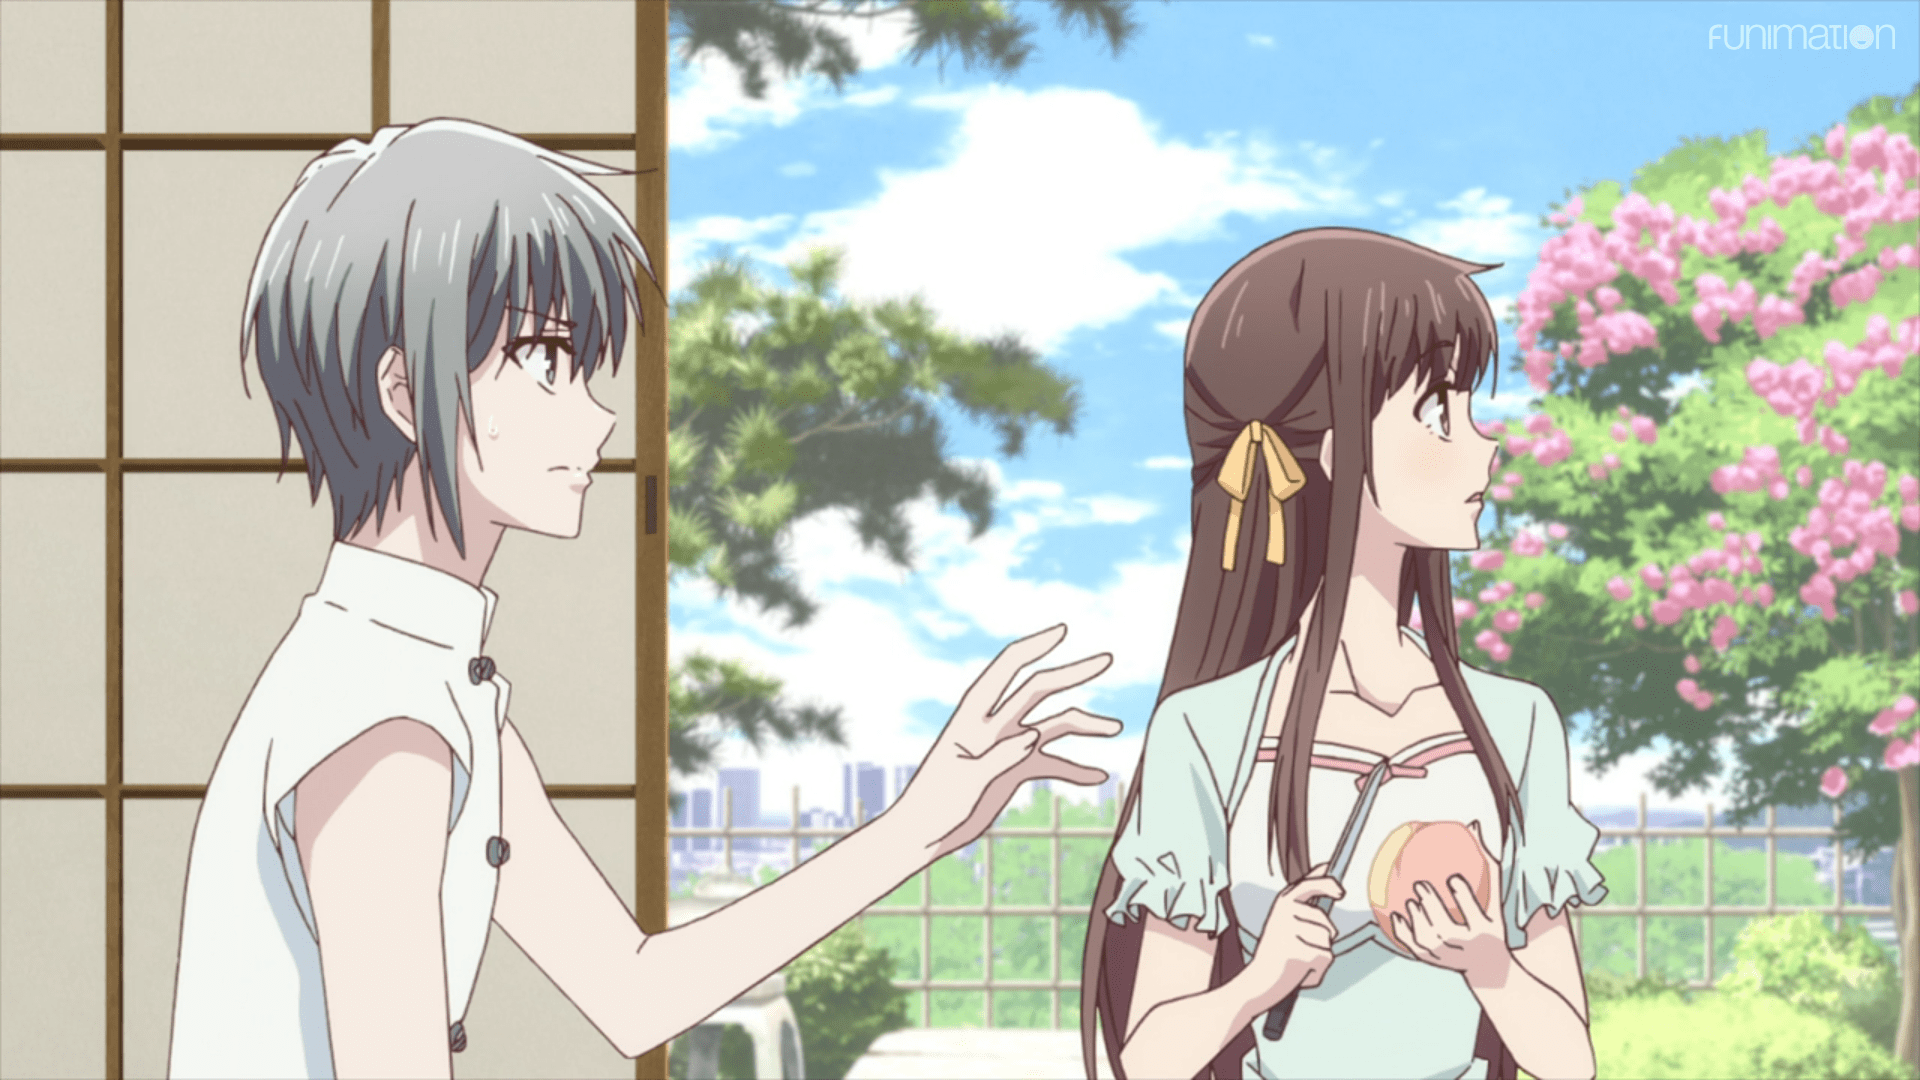 Fruits Basket Season 3 Episode 2 Release Date Where to Watch & Spoilers